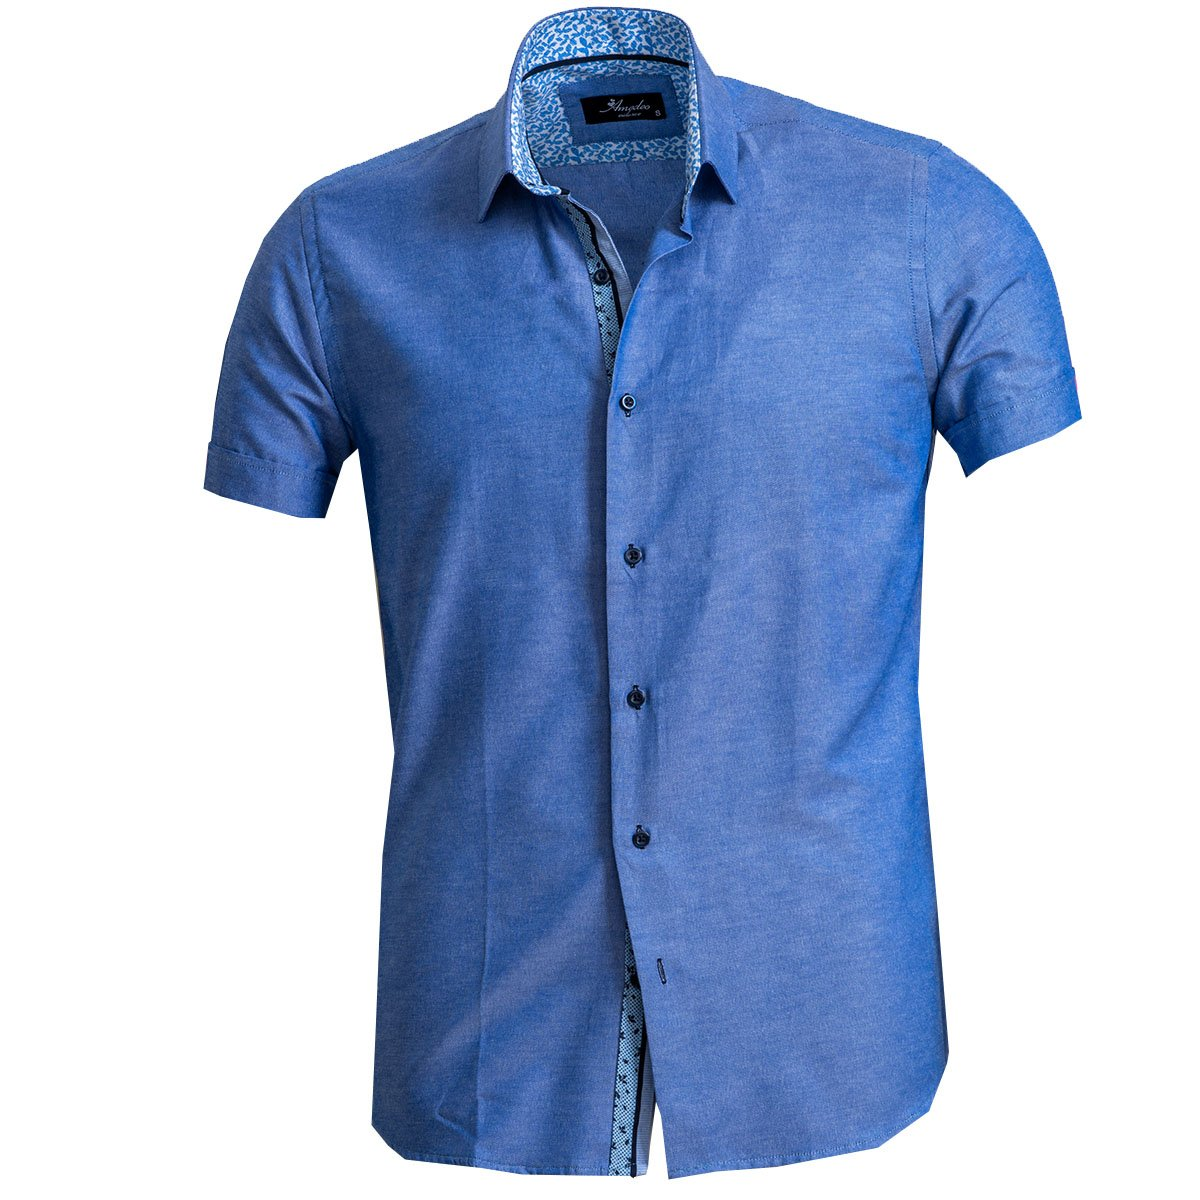 Men's Button down Tailor Fit Soft 100% Cotton Short Sleeve Dress Shirt Denim Blue casual And Formal - Amedeo Exclusive